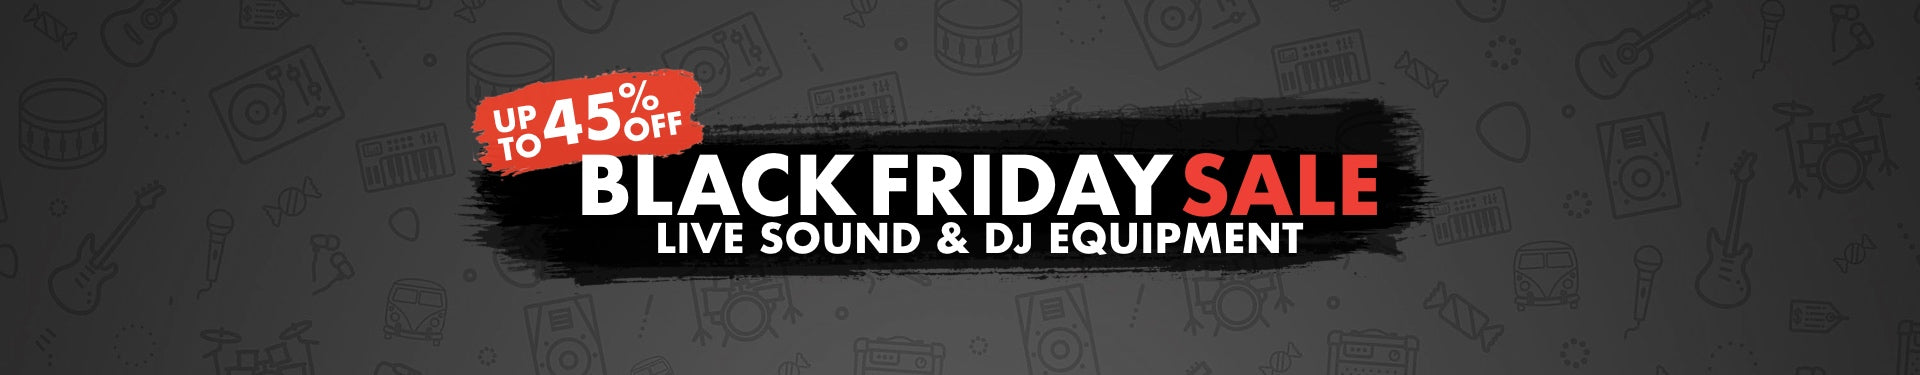 Black Friday Live Sound & DJ Equipment